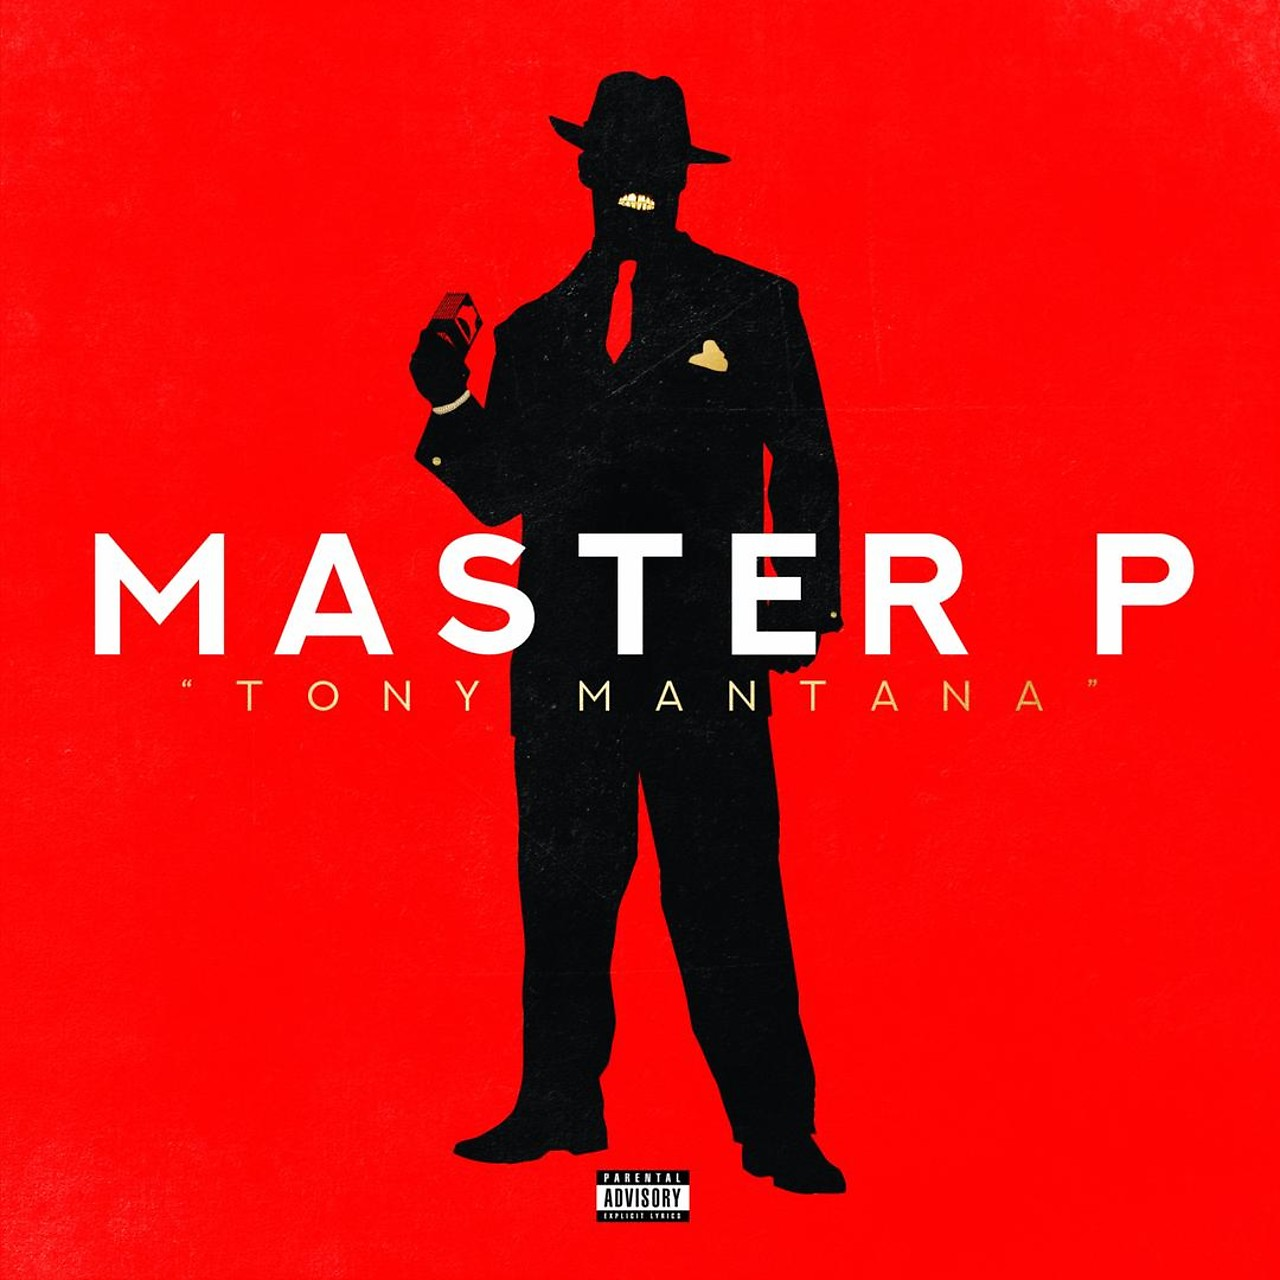 Tony Montana by Master P | Arena Music